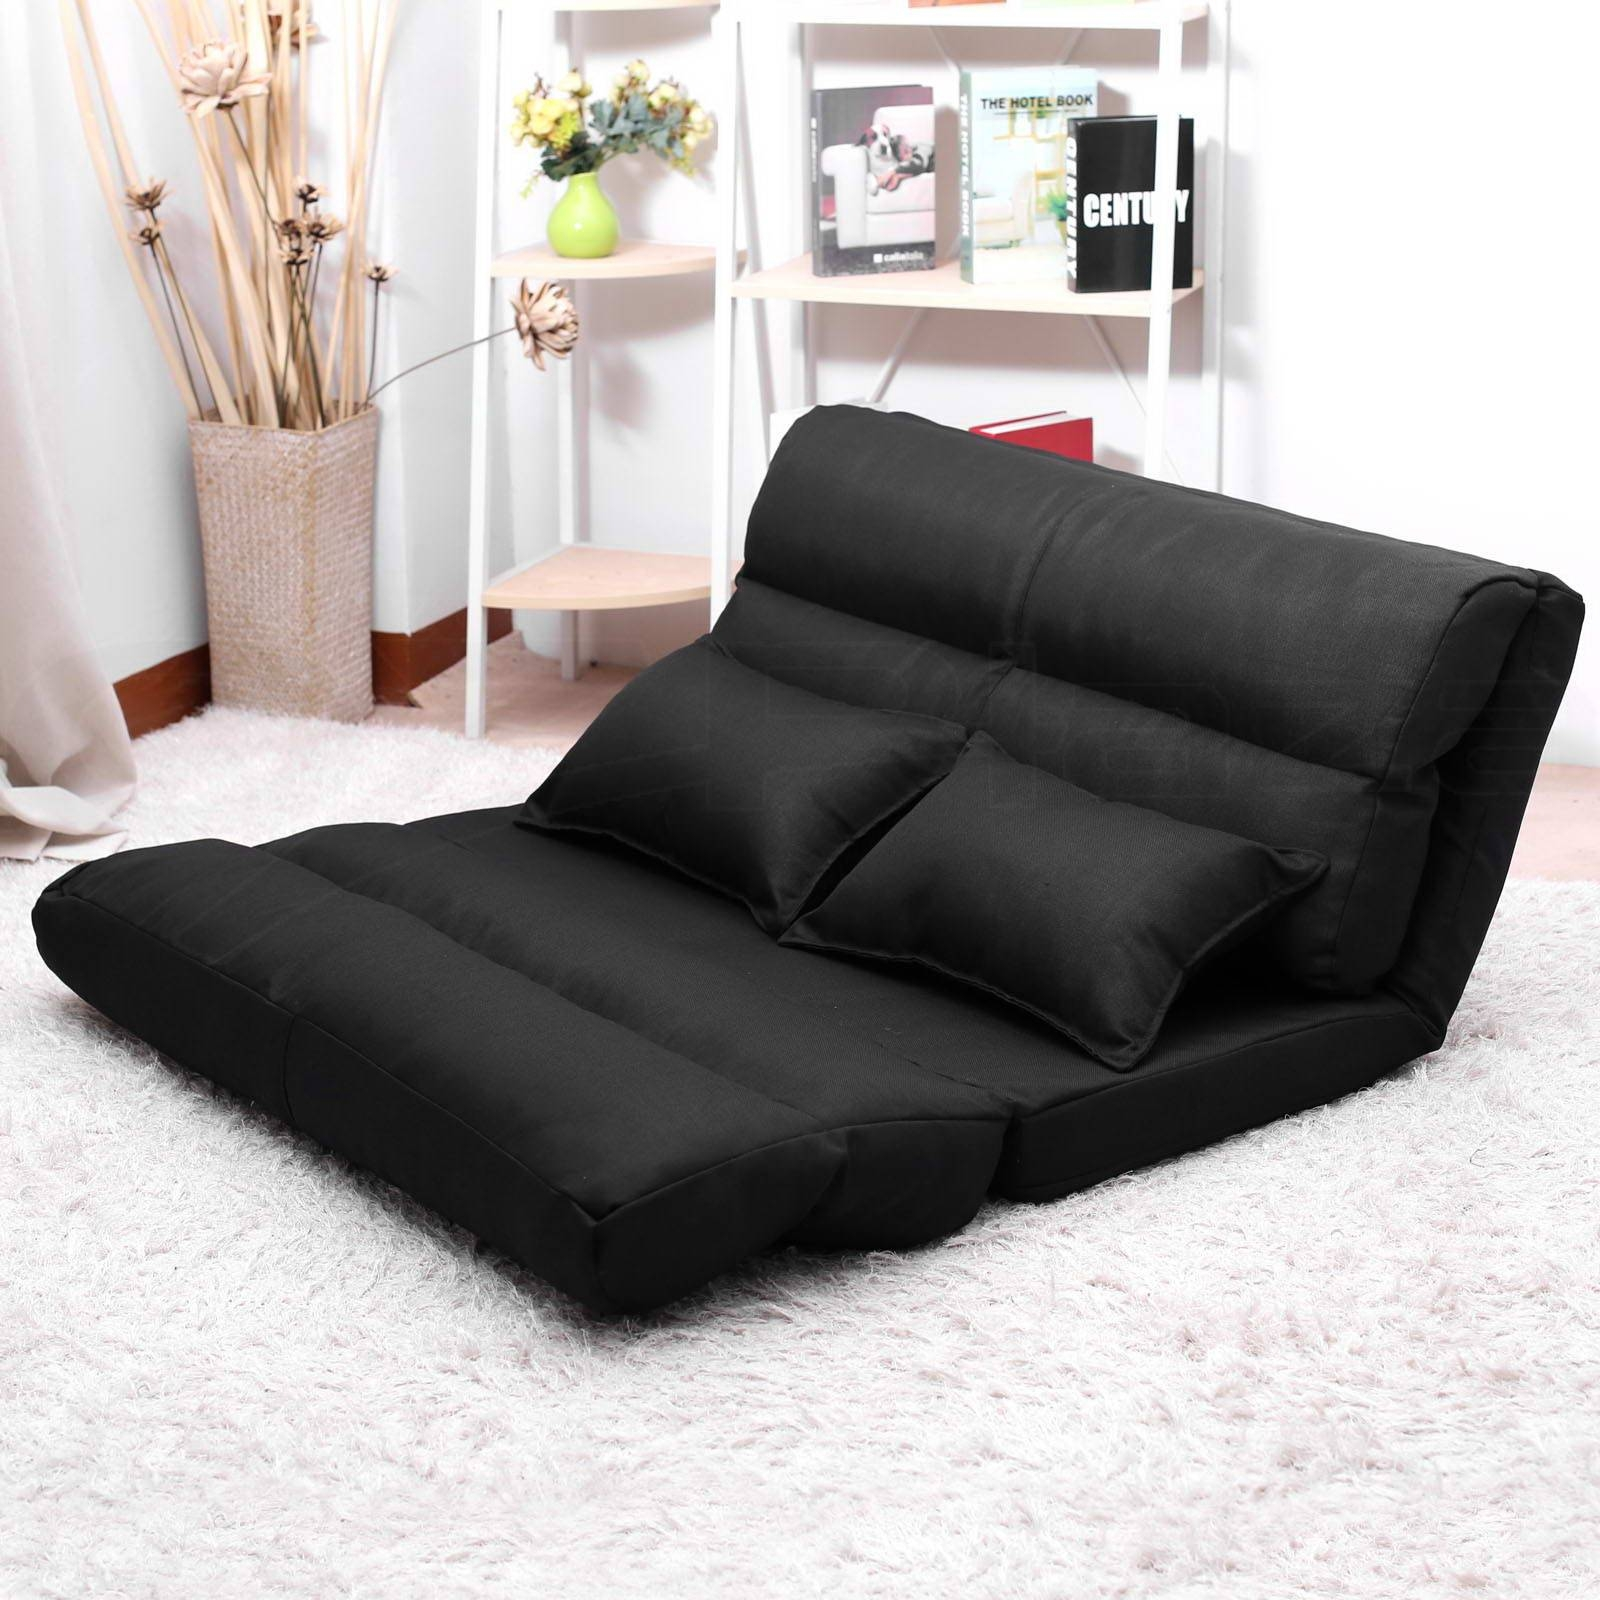 Lounge Sofa Bed Double Size Floor Recliner Folding Chaise Chair with Chaise Longue Sofa Beds (Image 9 of 15)